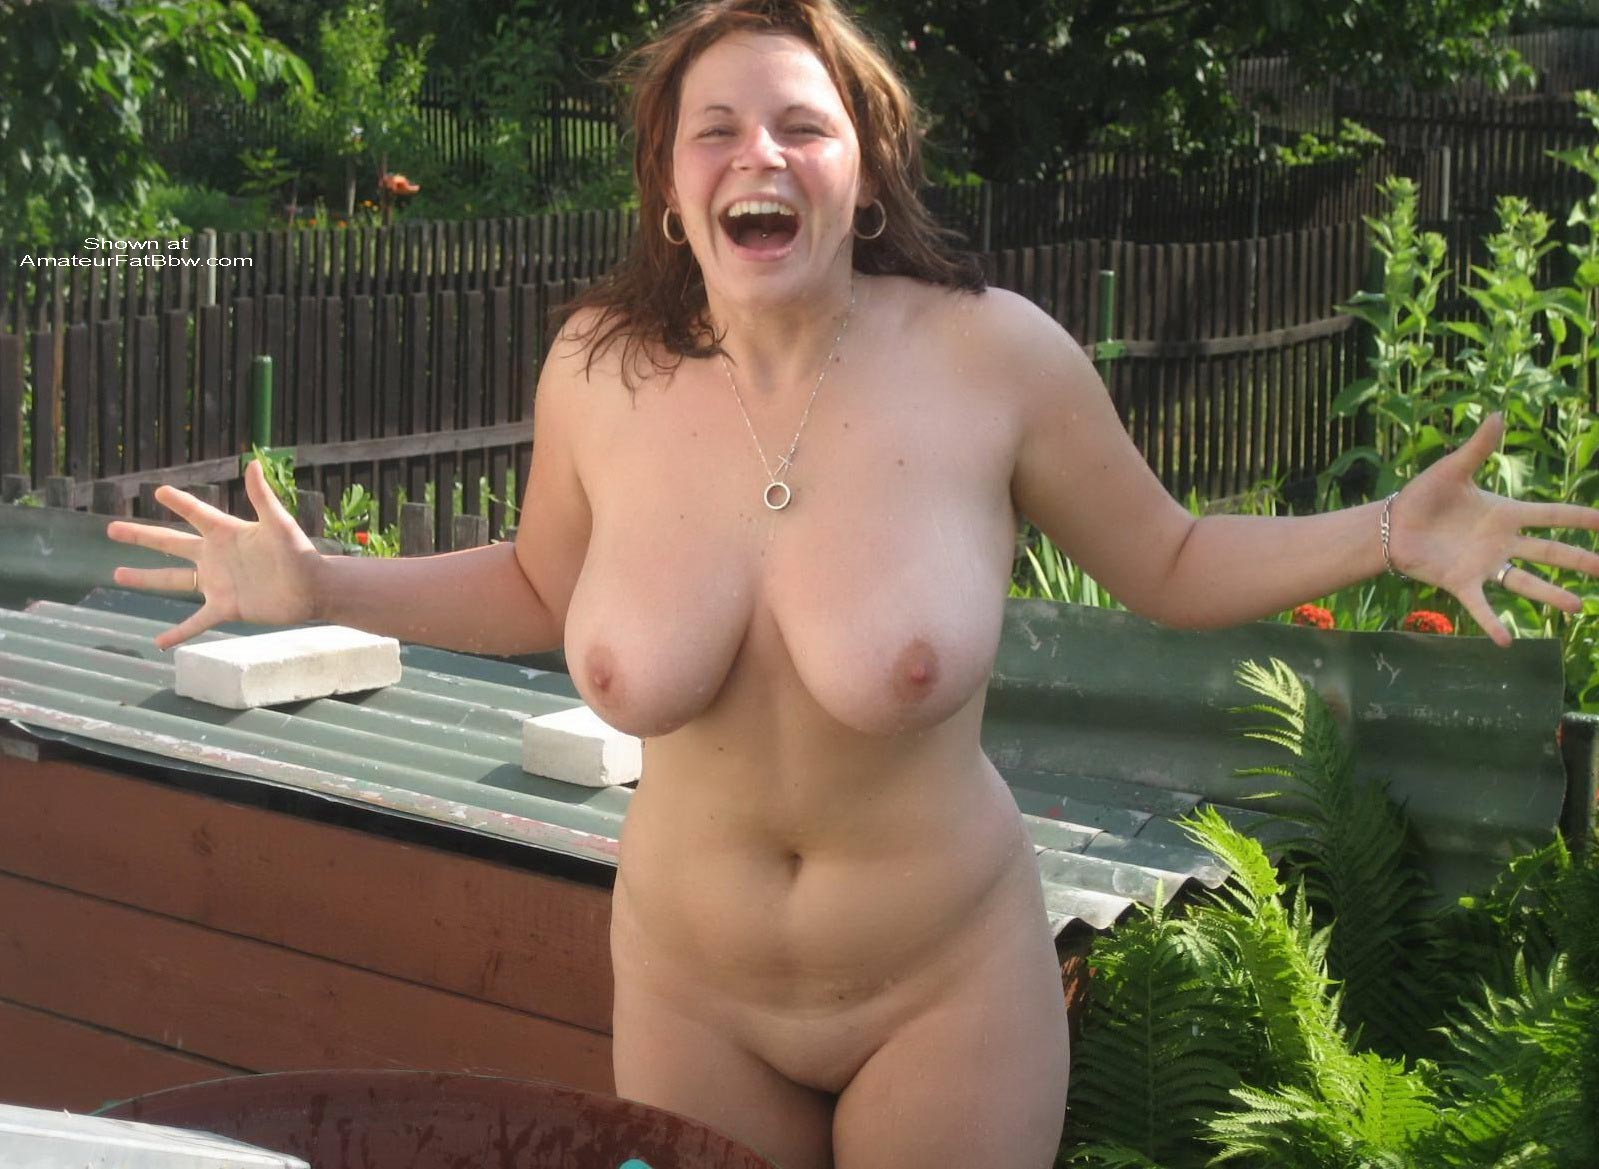 Amature big tit video